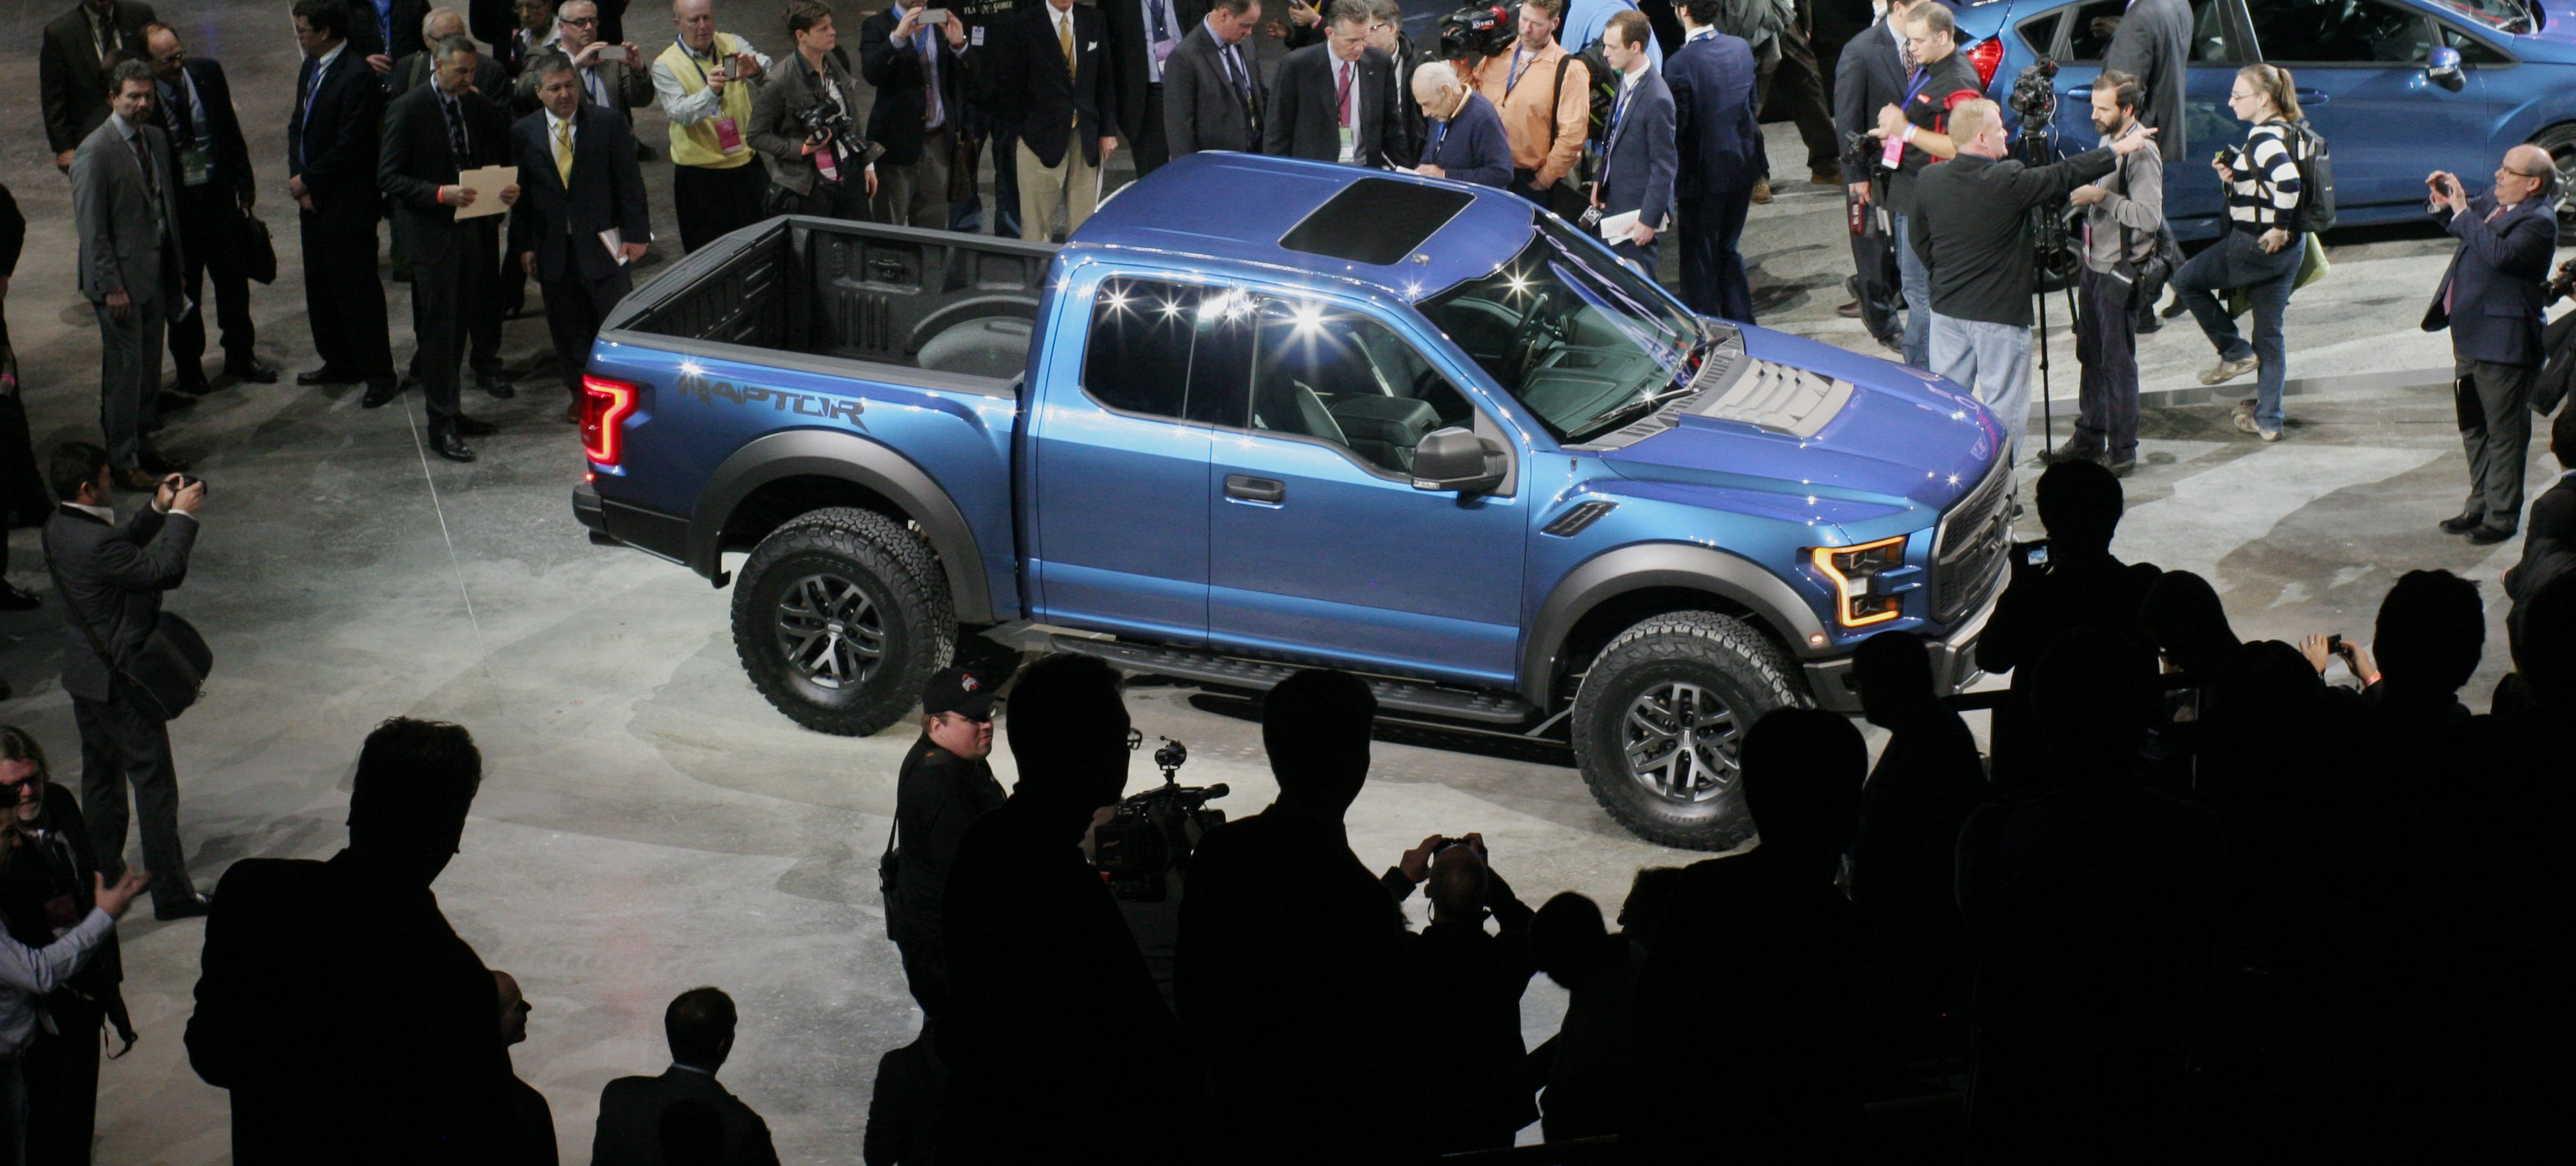 2017 Ford Raptor: The Only Question That Matters